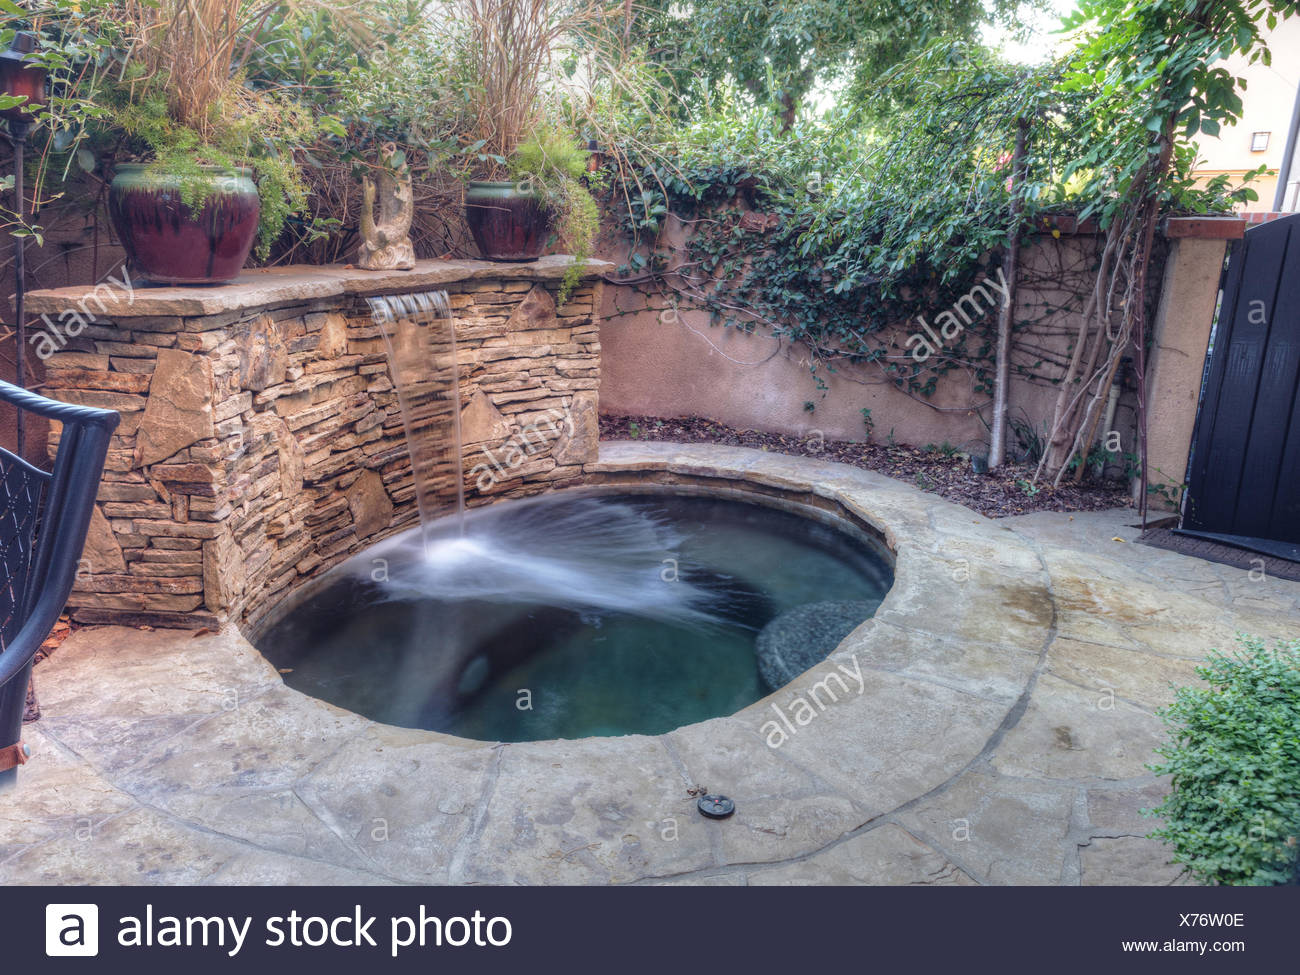 Oval hot tub spa with waterfall Stock Photo: 279819806 - Alamy